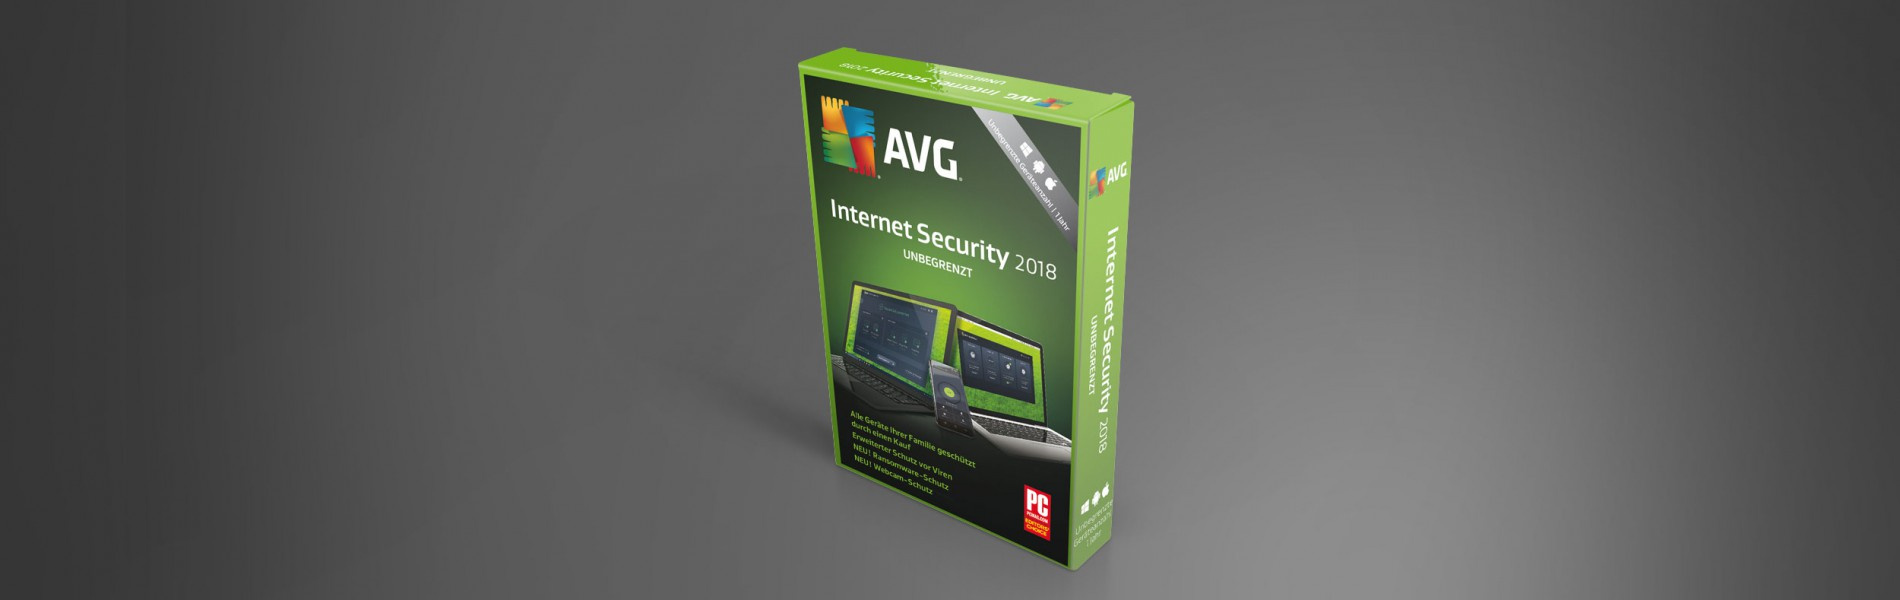 AVG Internet Security Unbegrenzt 2018